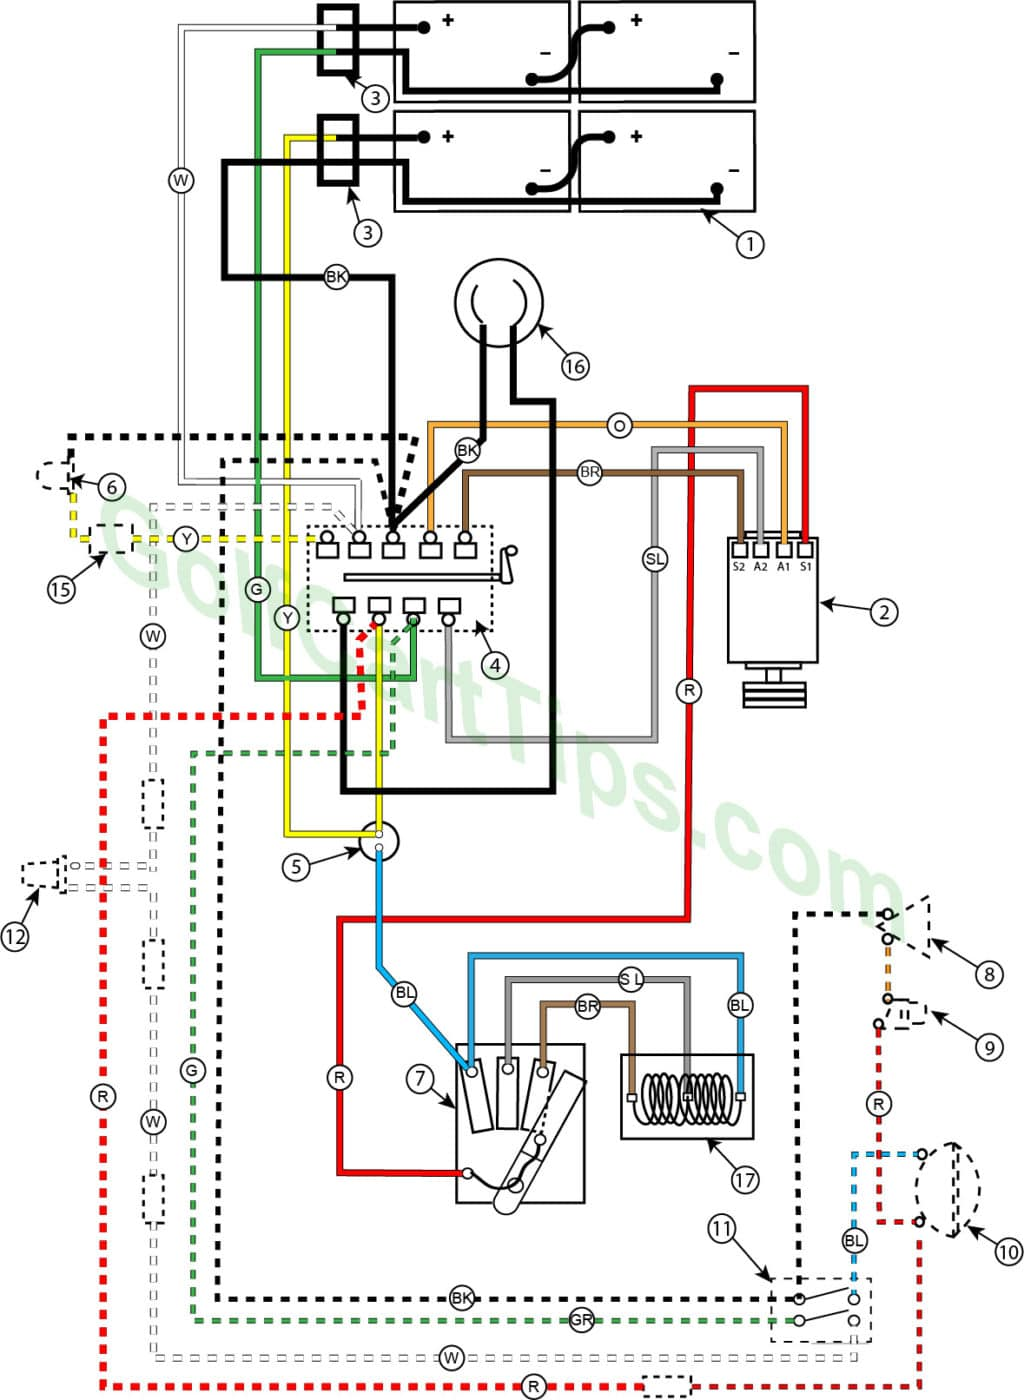 hight resolution of wiring diagram for 1957 model 732 42 24v golfster and 731 44 24v industrial